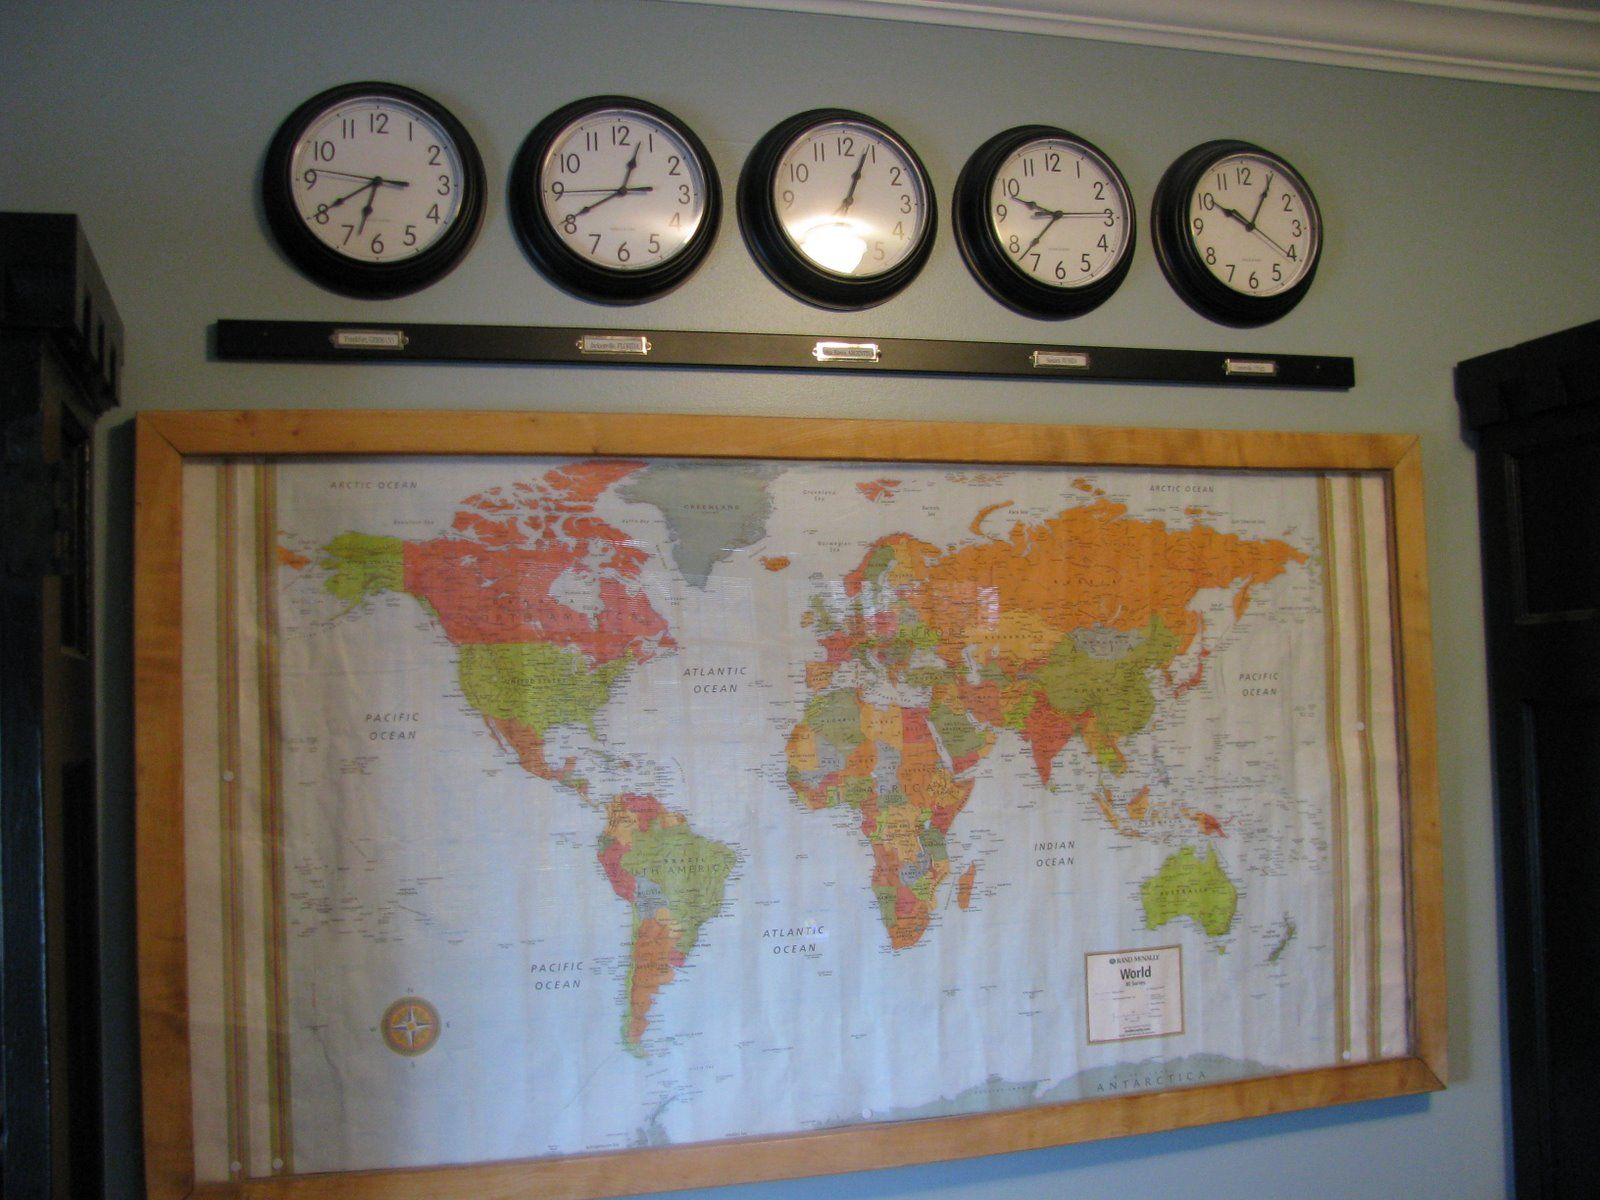 i like the idea of making time zone clocks since hubby travels